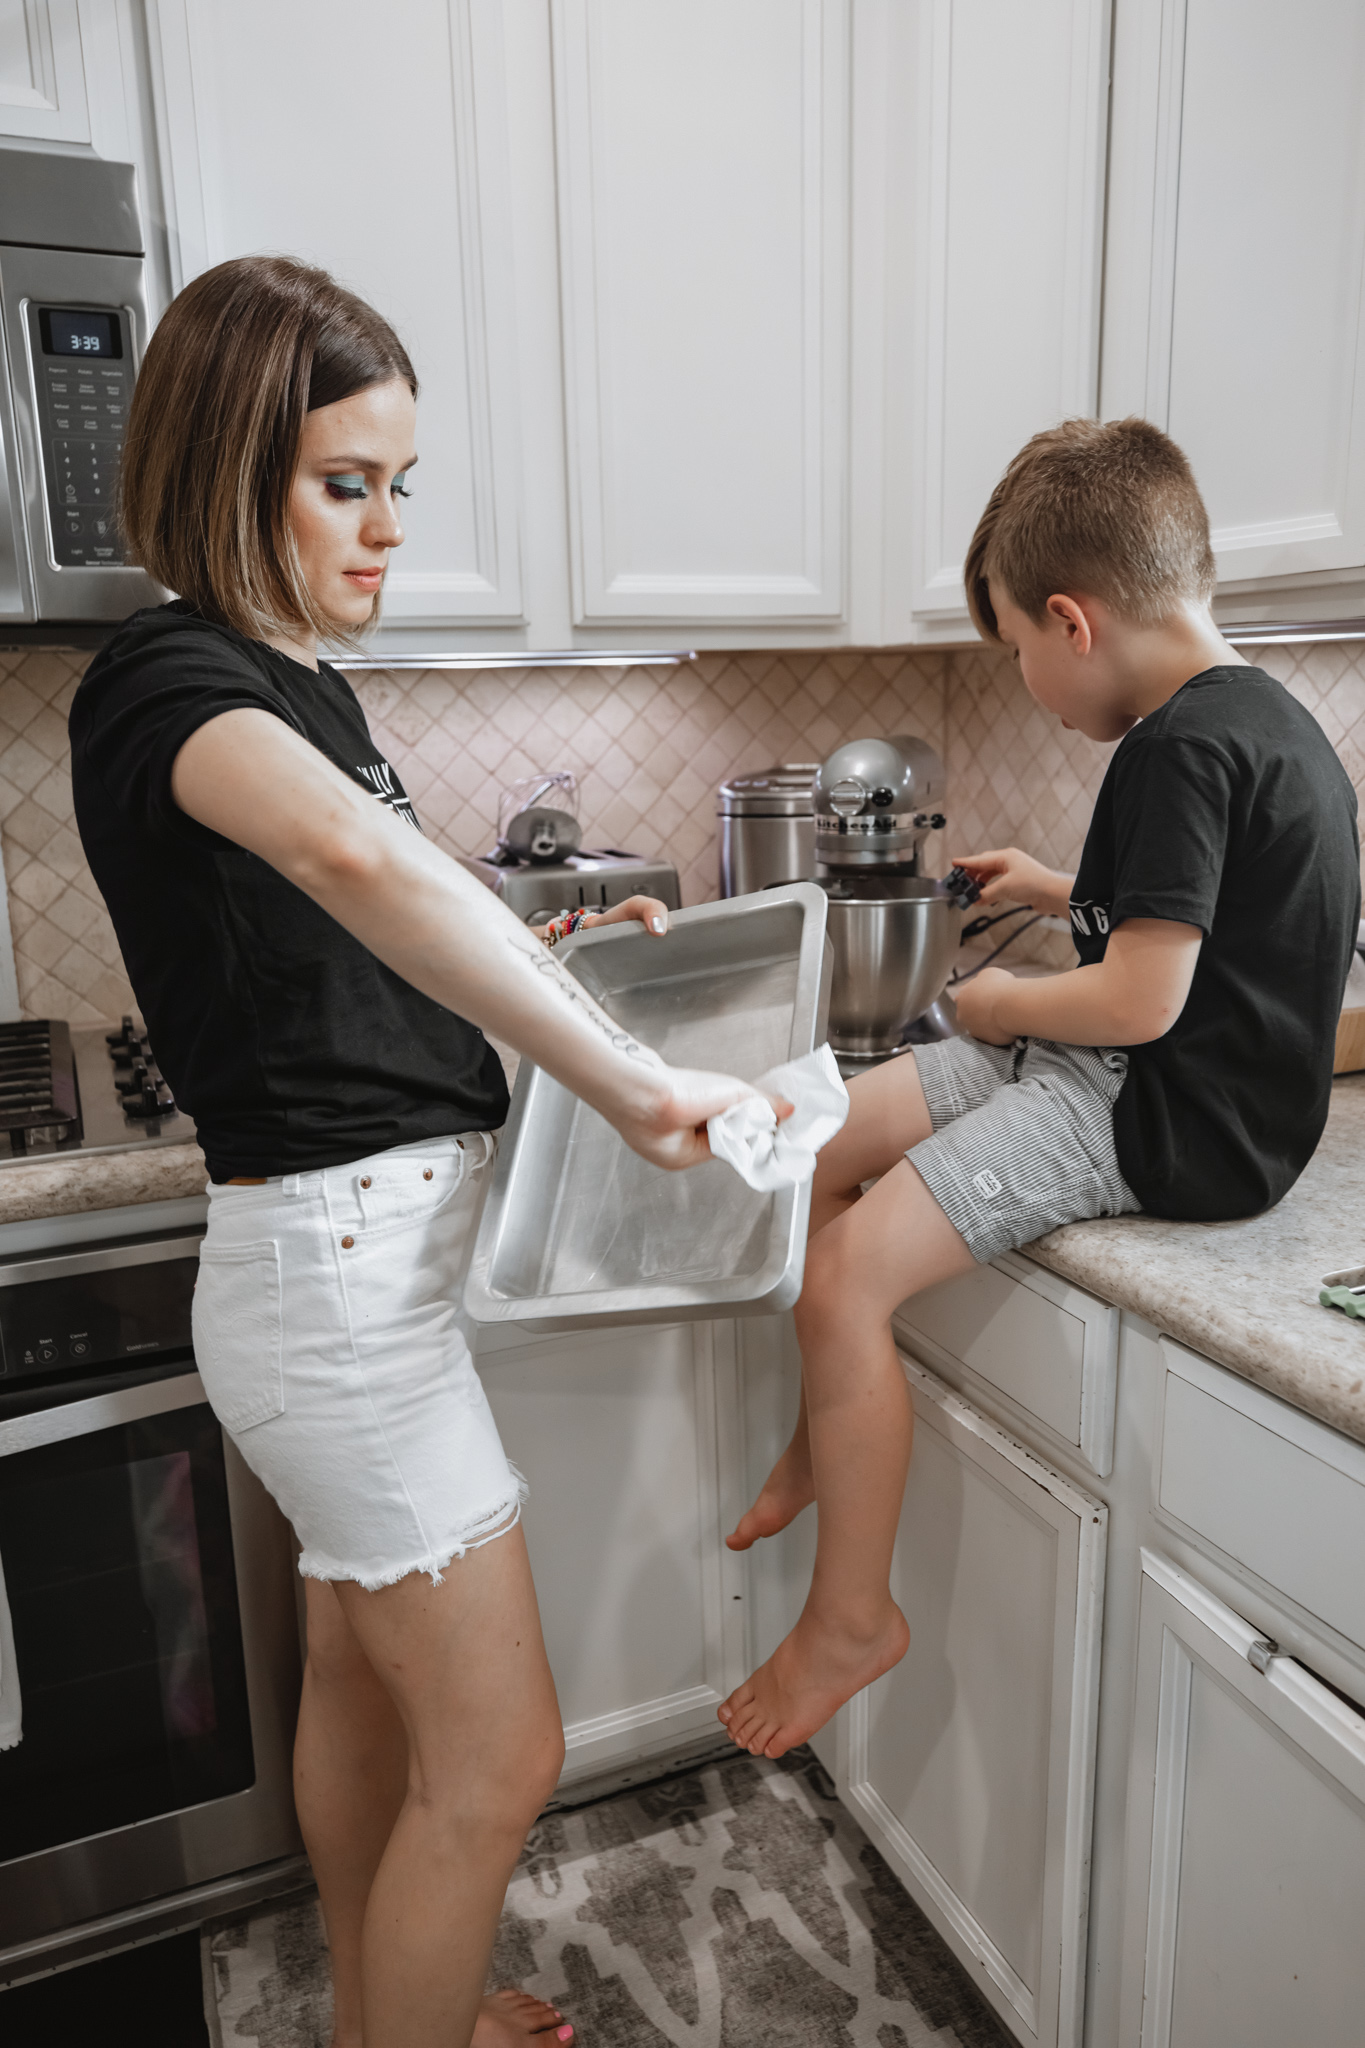 Stuck inside the house with nothing to do? Houston lifestyle blogger Elly Brown shares over 10 Activities For Kids at Home to do during social distancing!